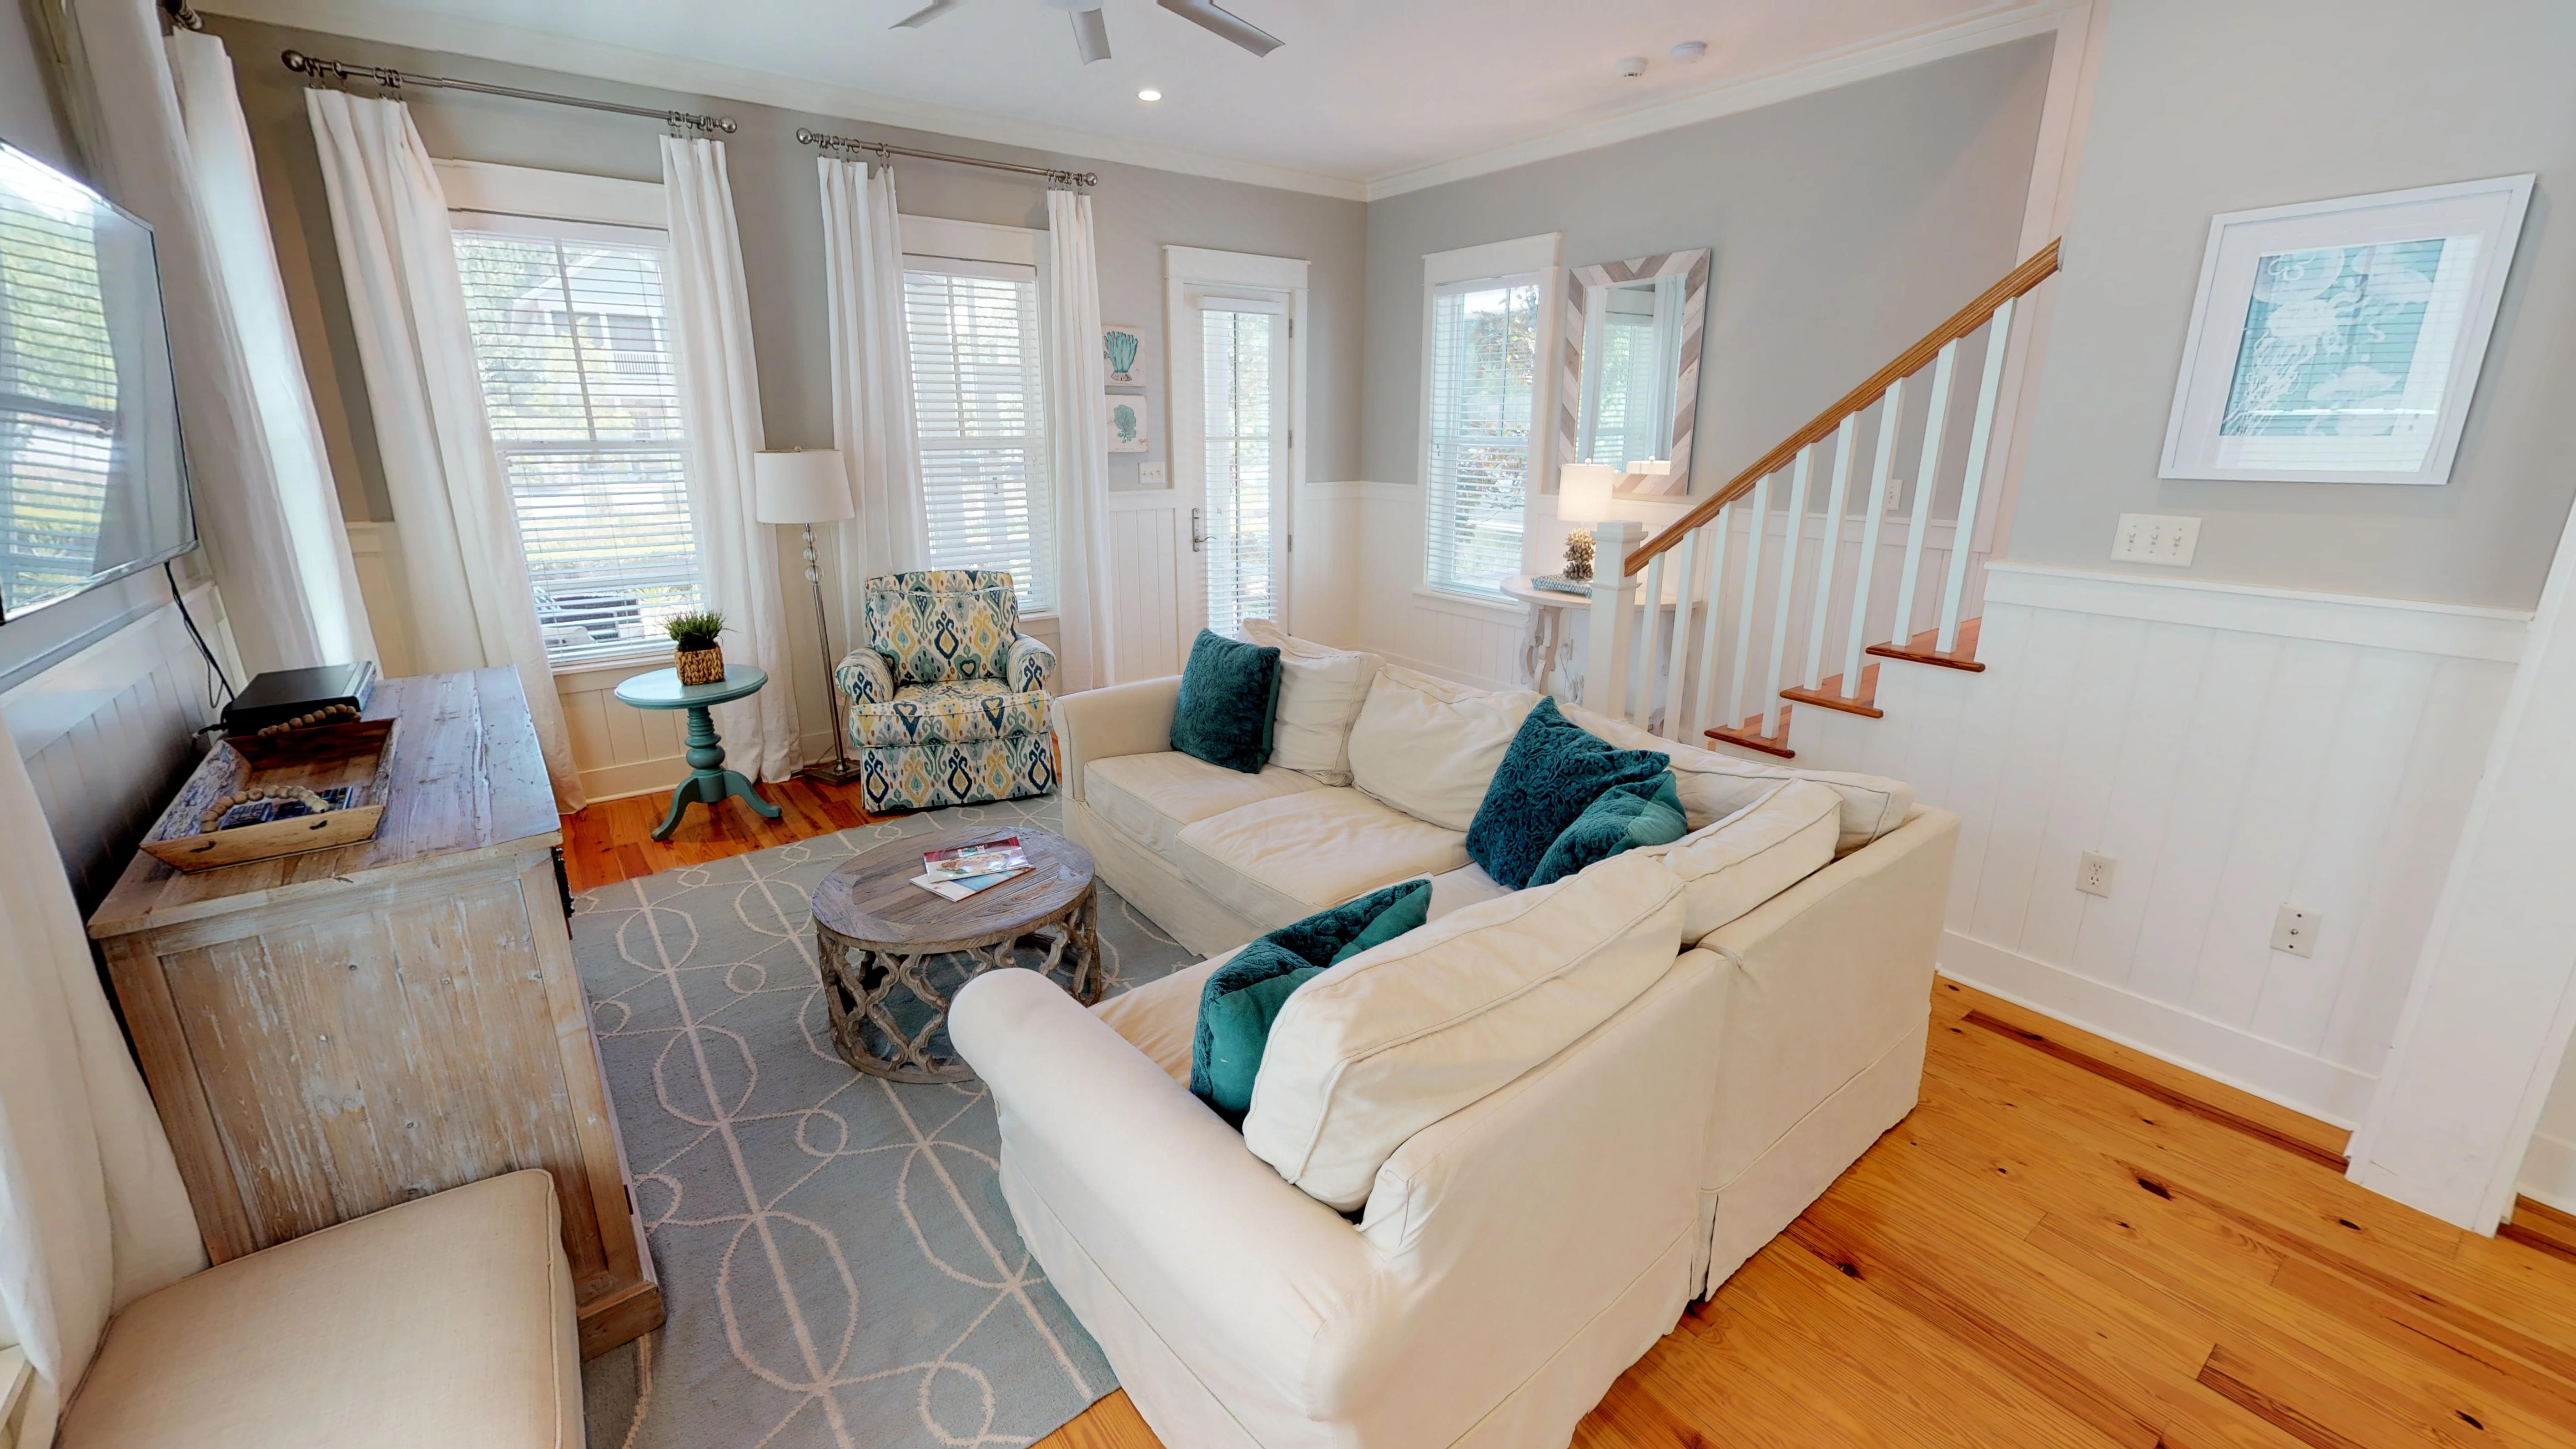 Charming Living Space with Plenty of Seating for Family and Friends